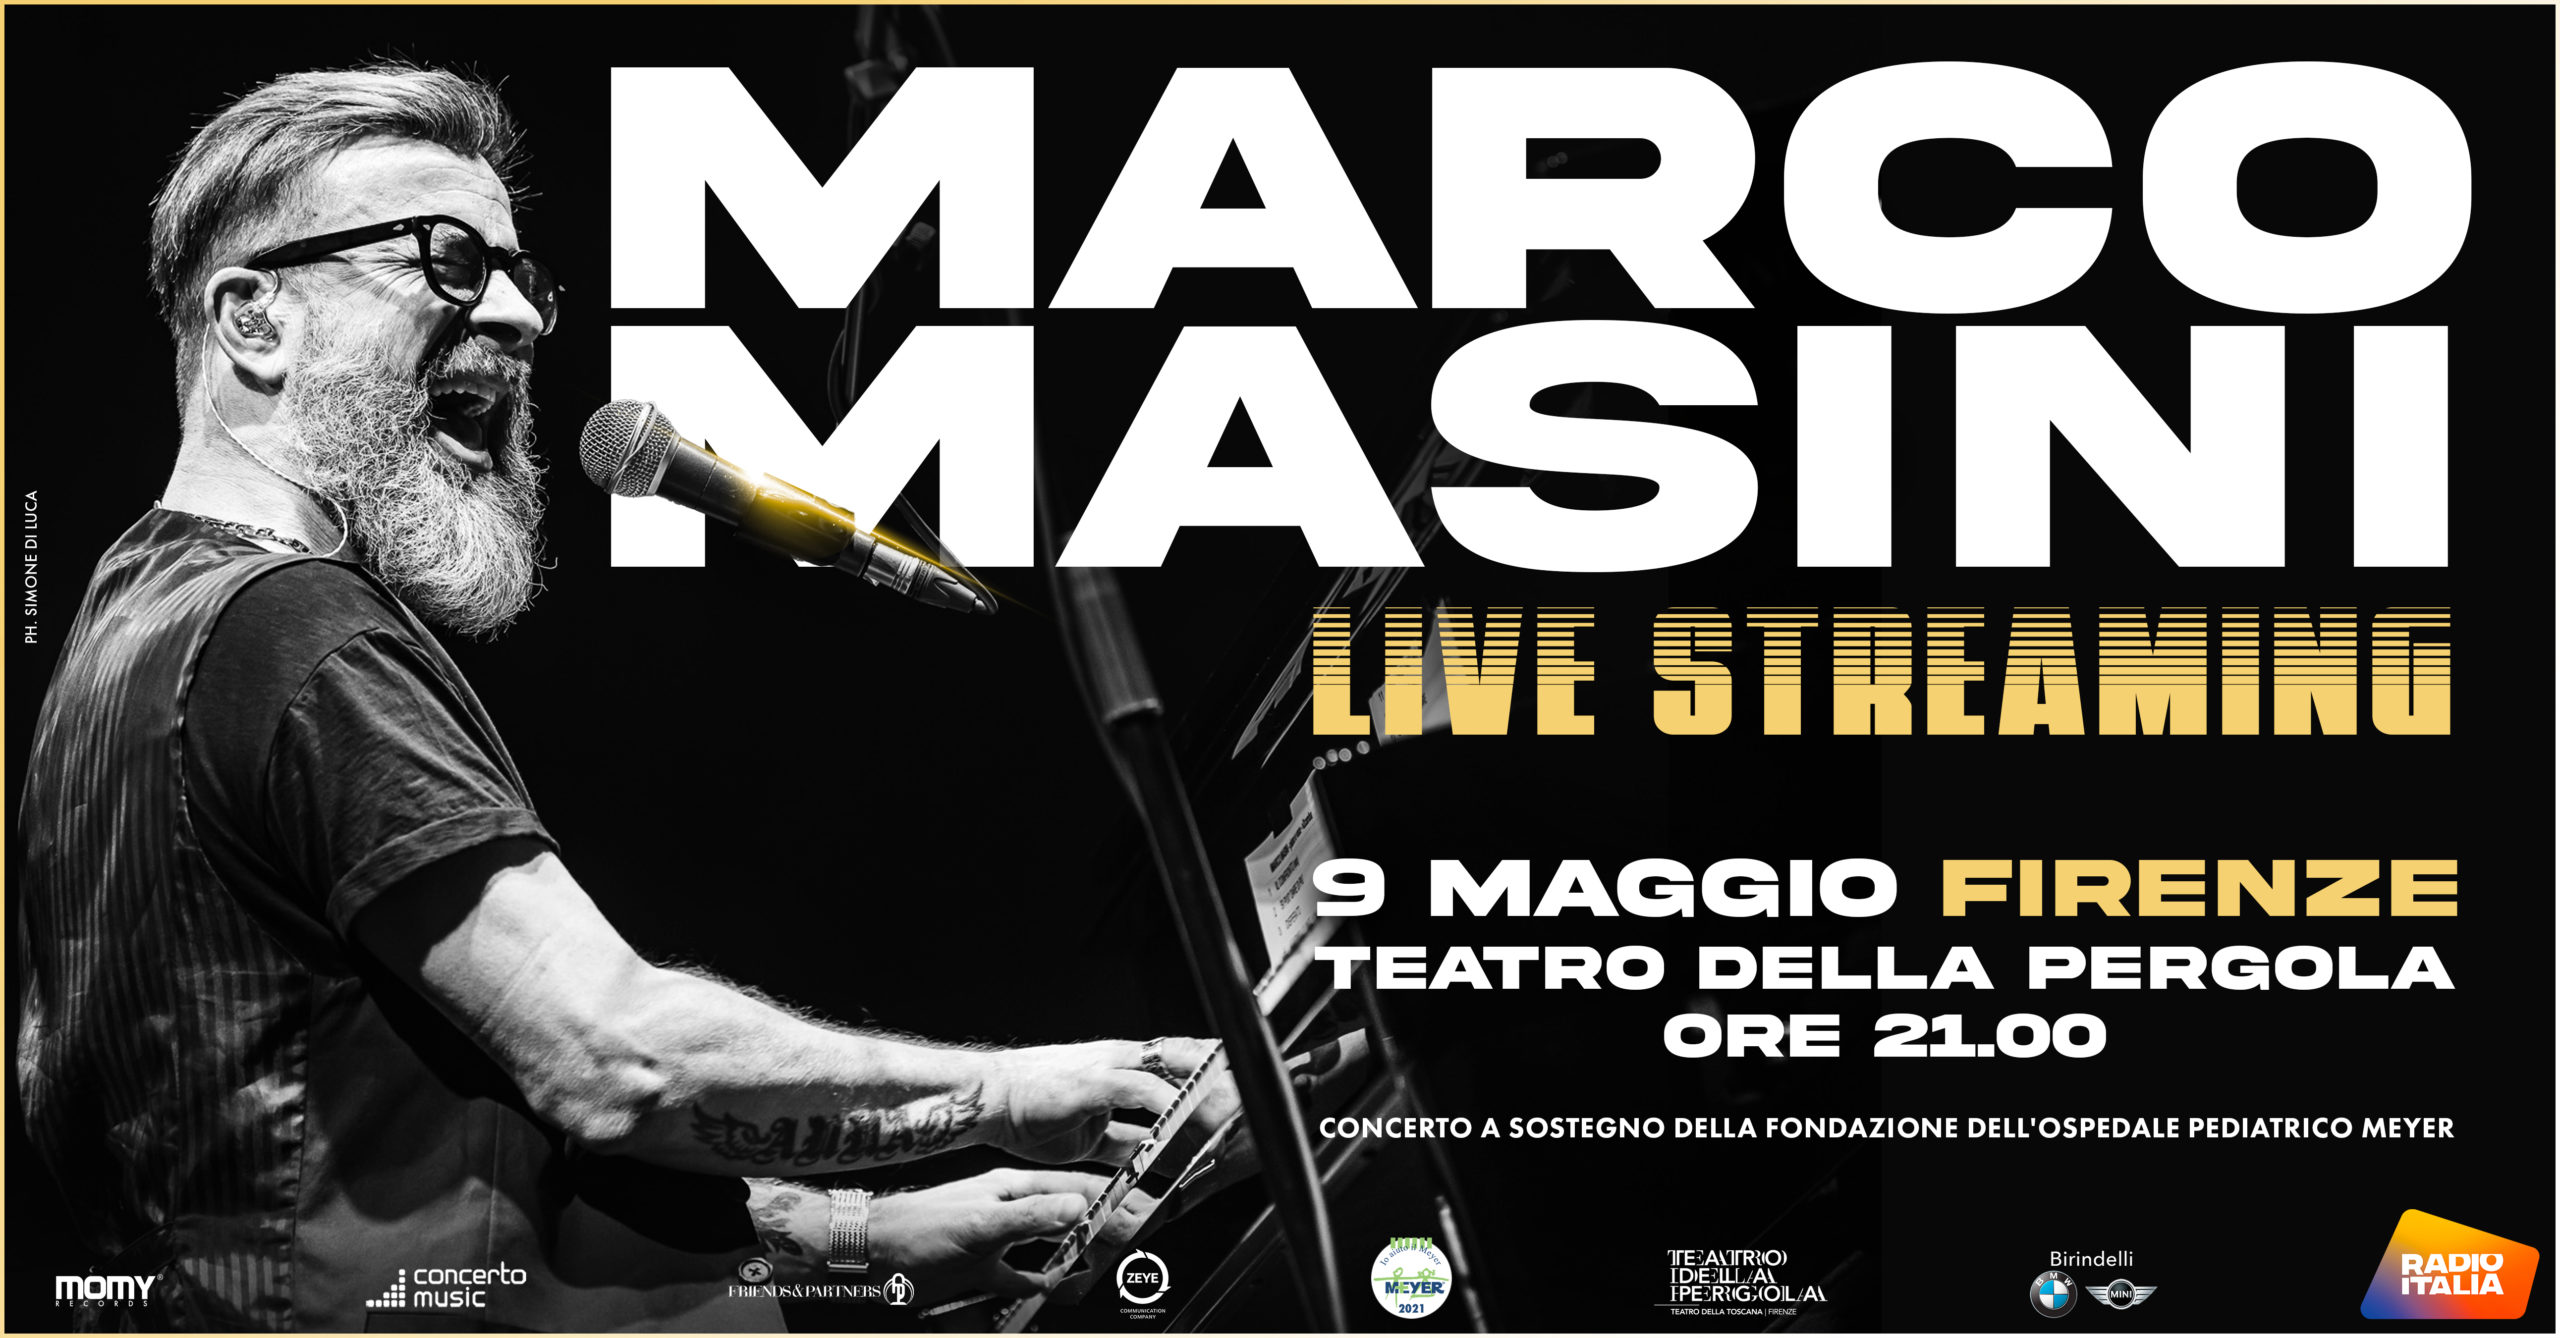 Marco Masini in live streaming